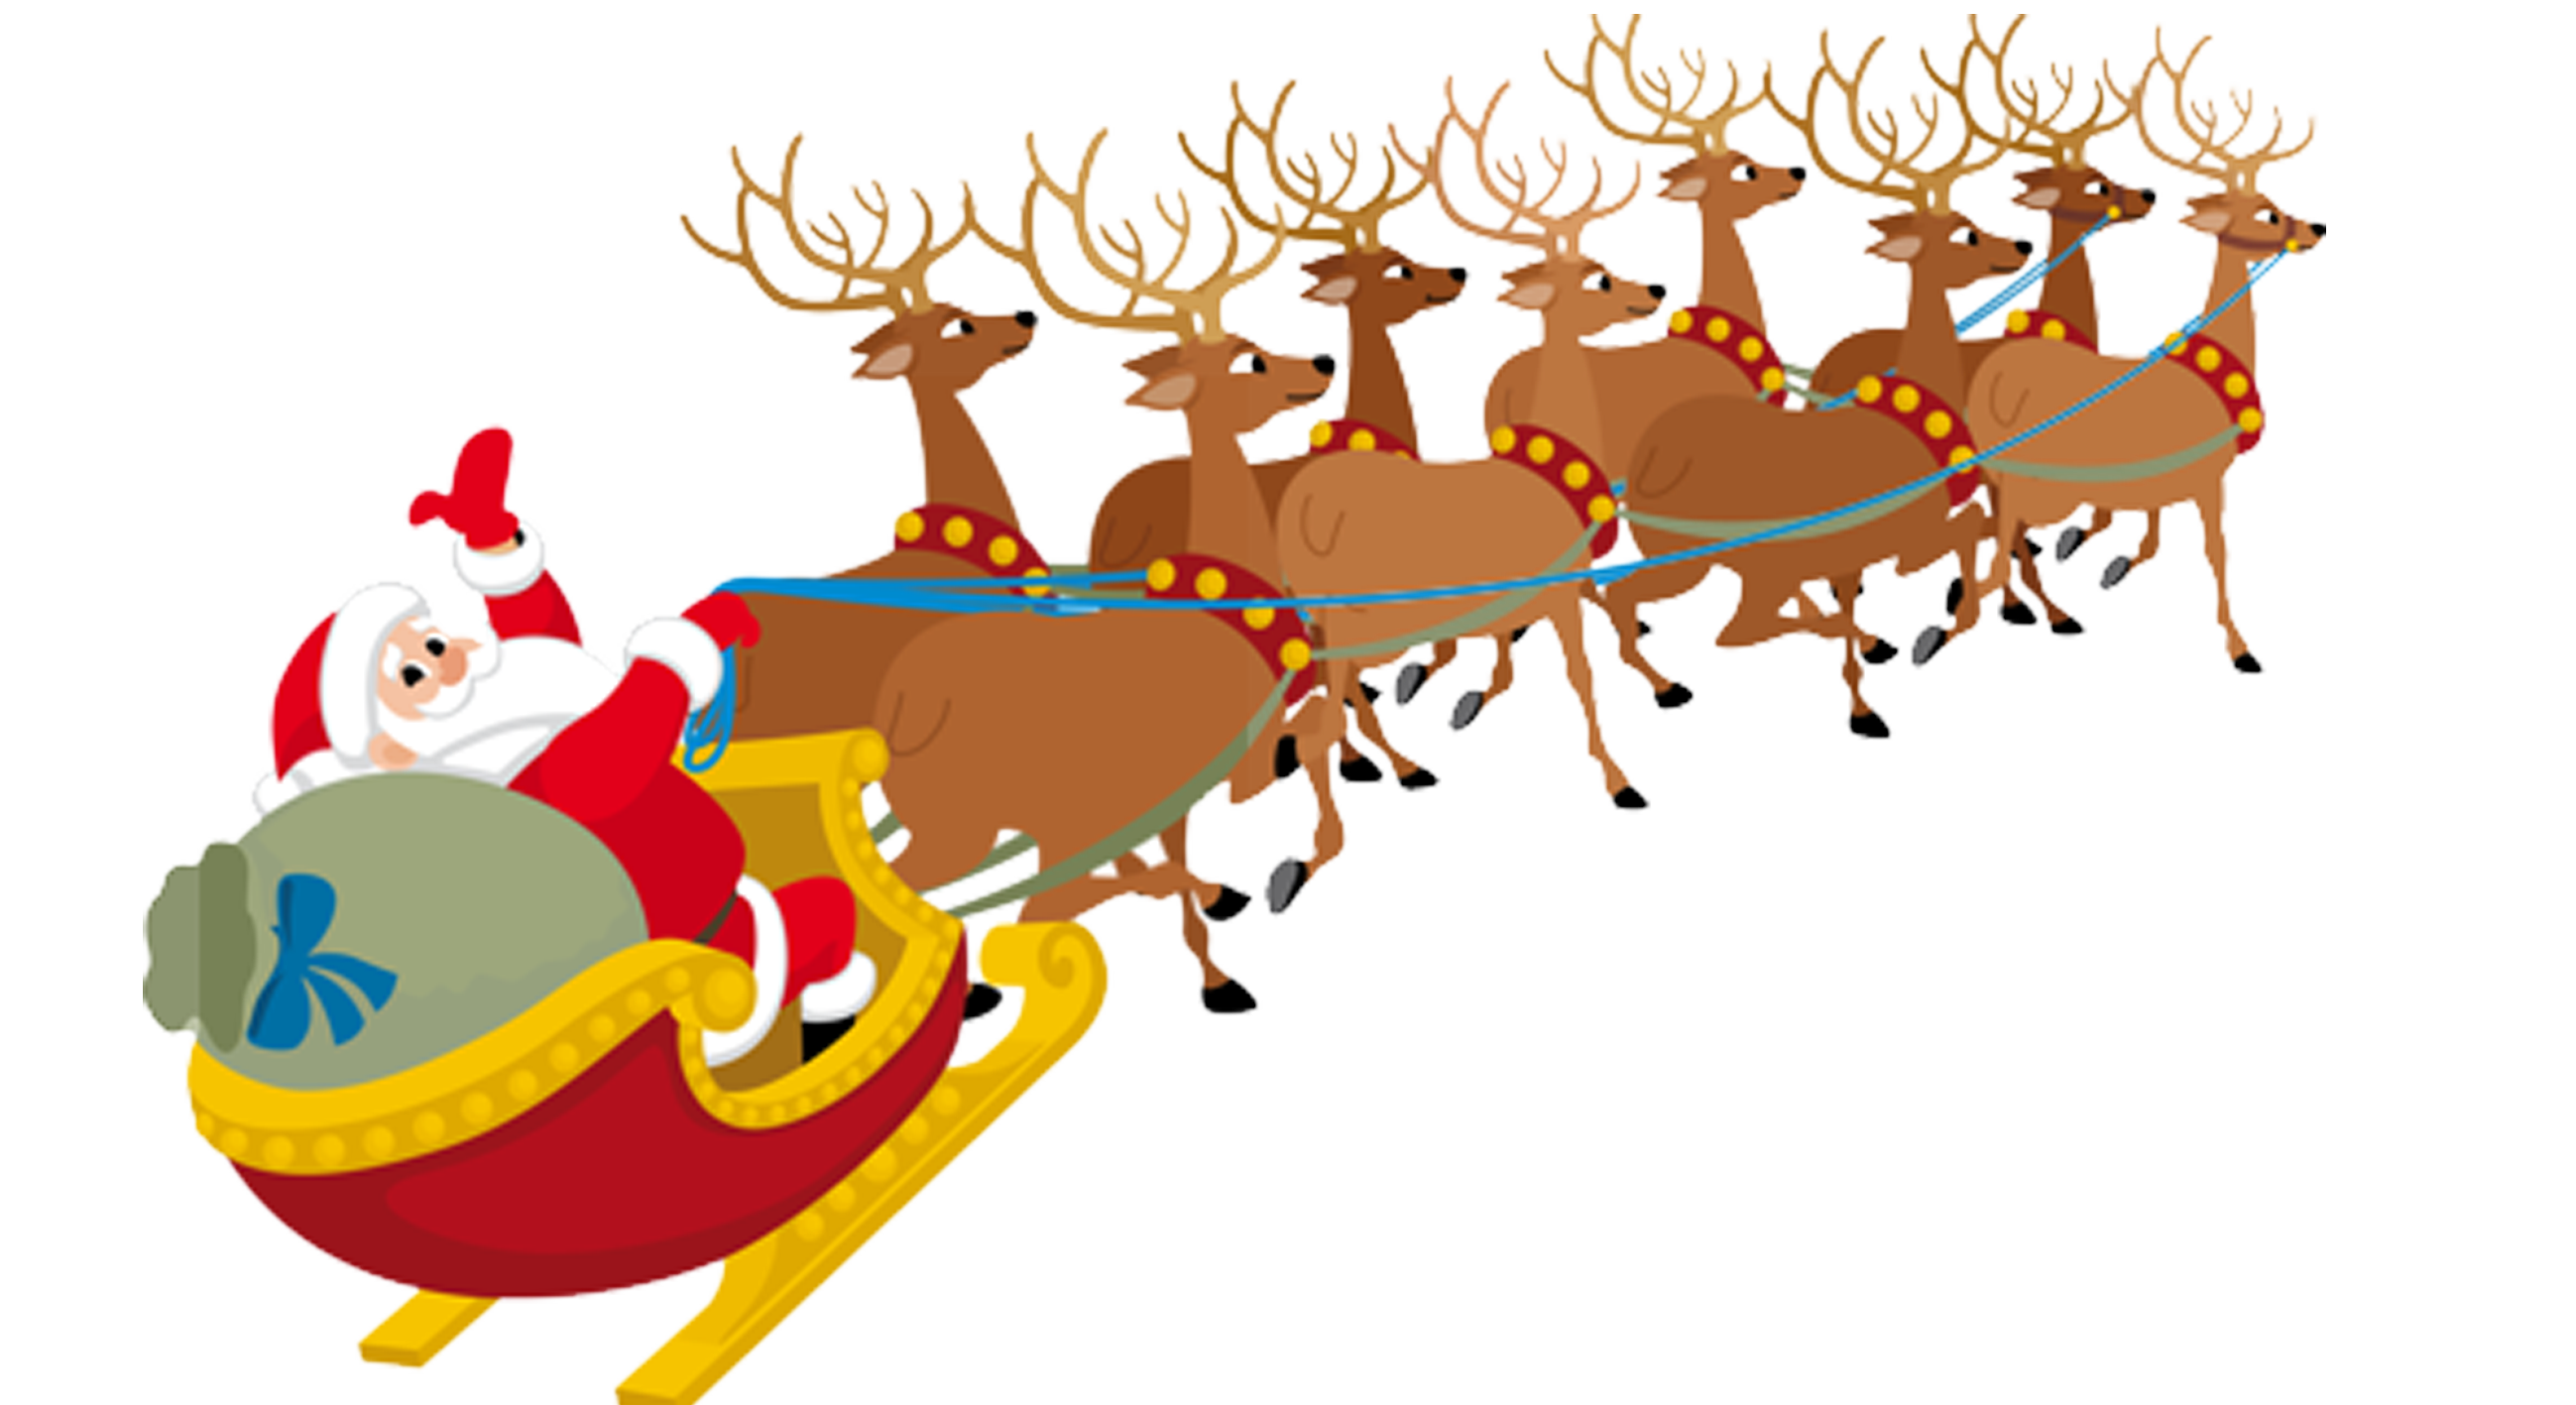 Santa claus clauss reindeer. India clipart village